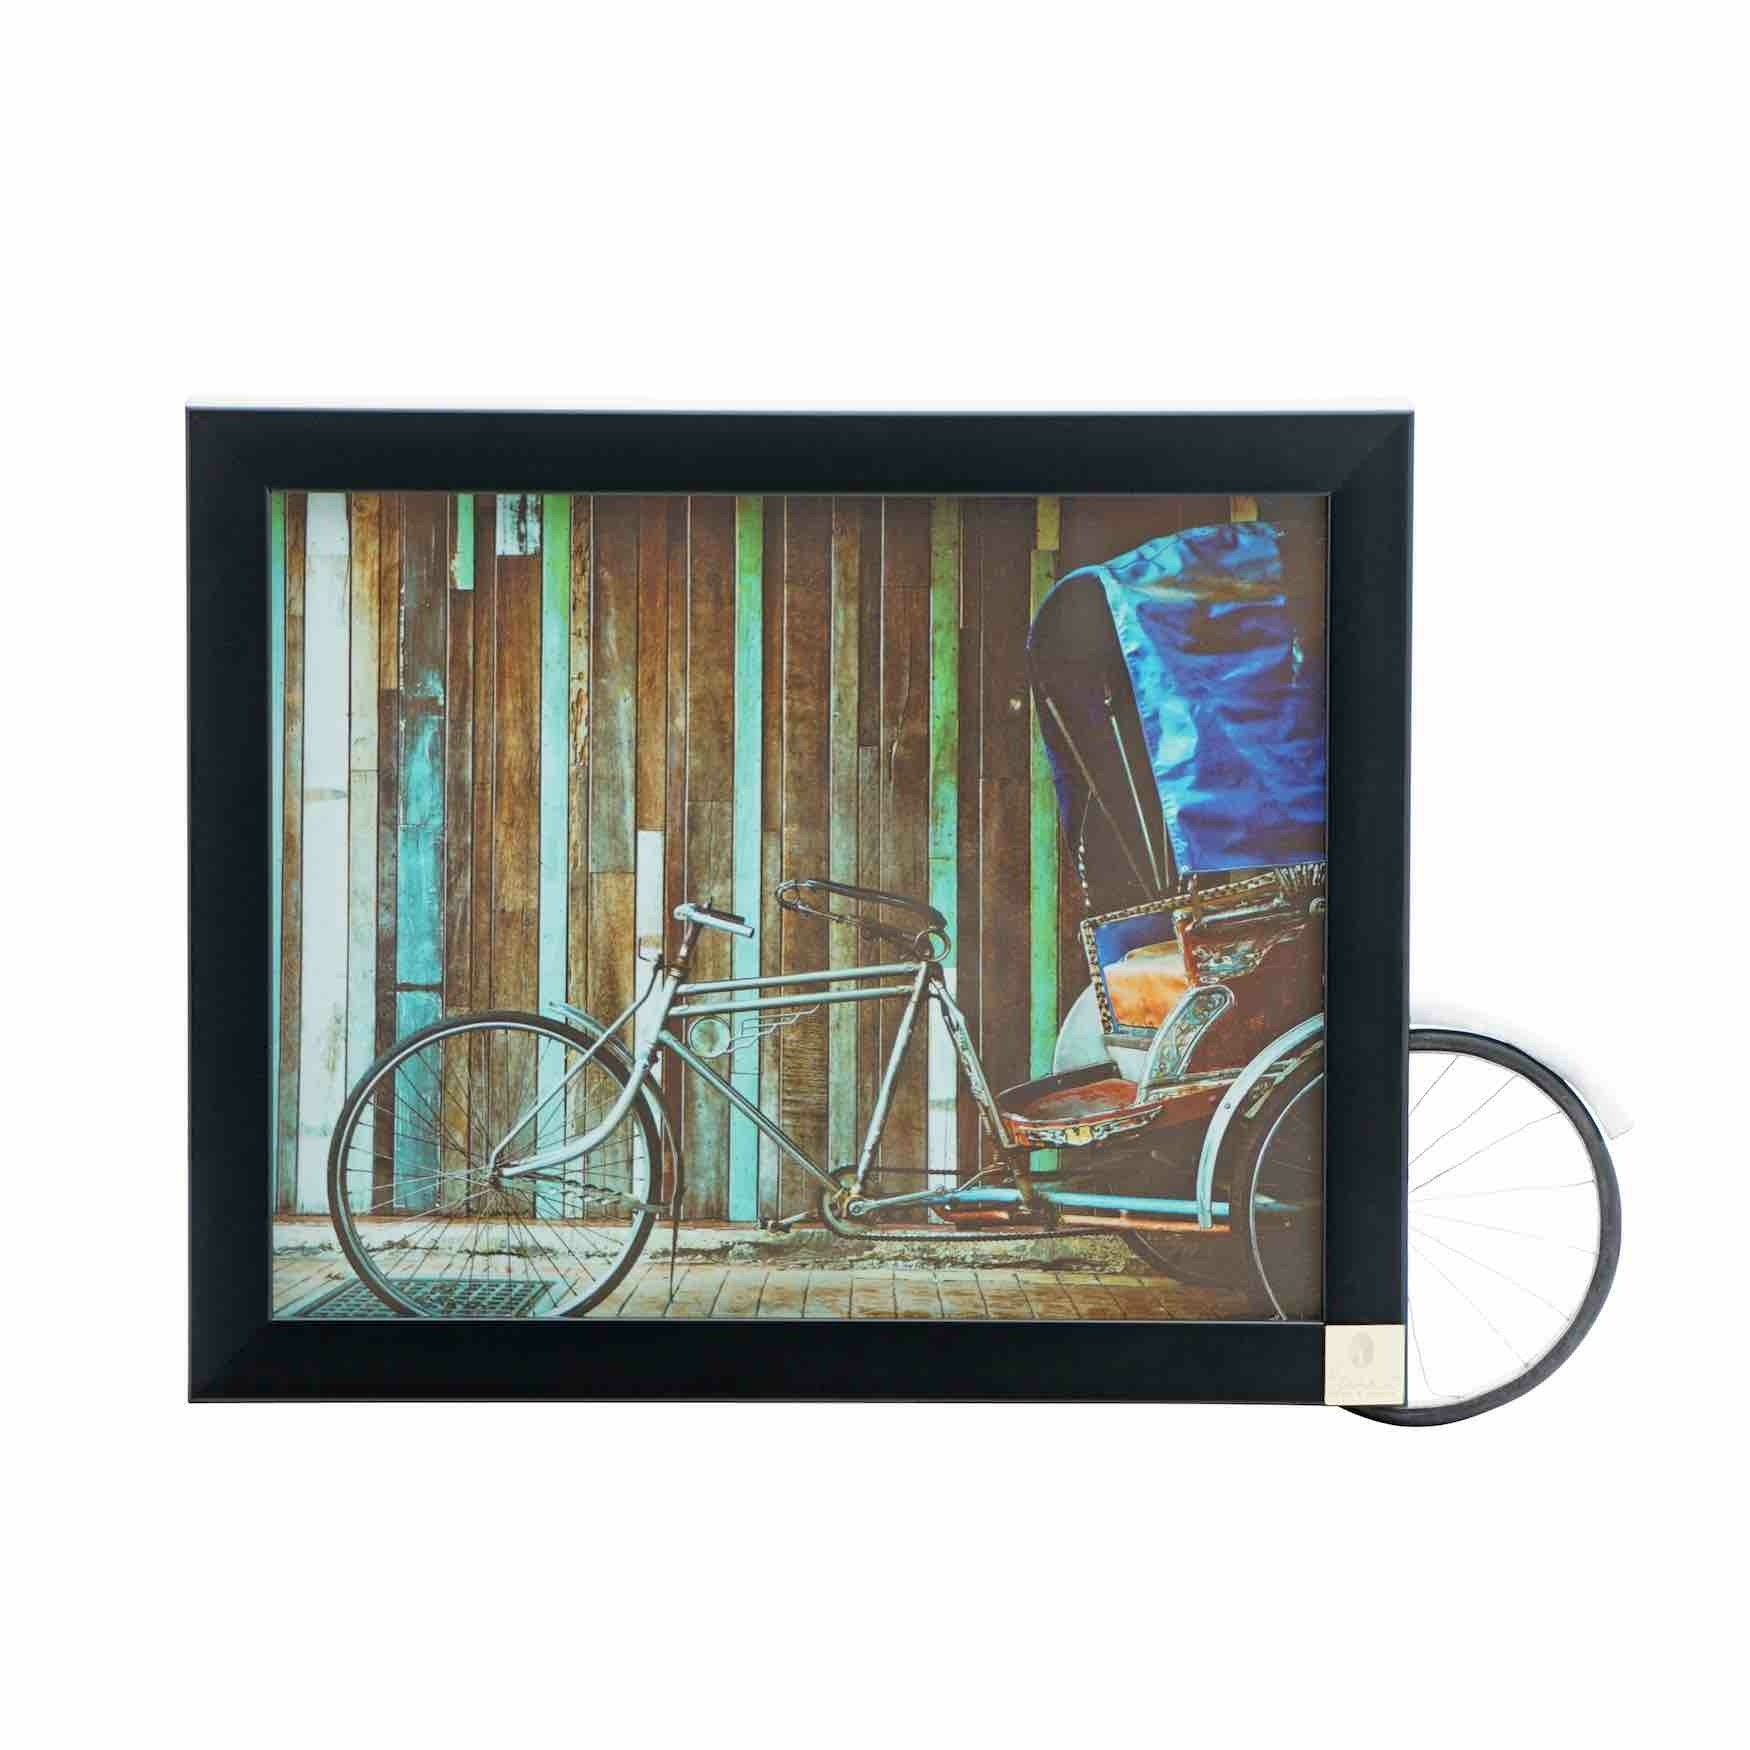 Shop For Isaaka Creations Horizontal Risksaw Wall Art Online! In Horizontal Wall Art (View 18 of 20)